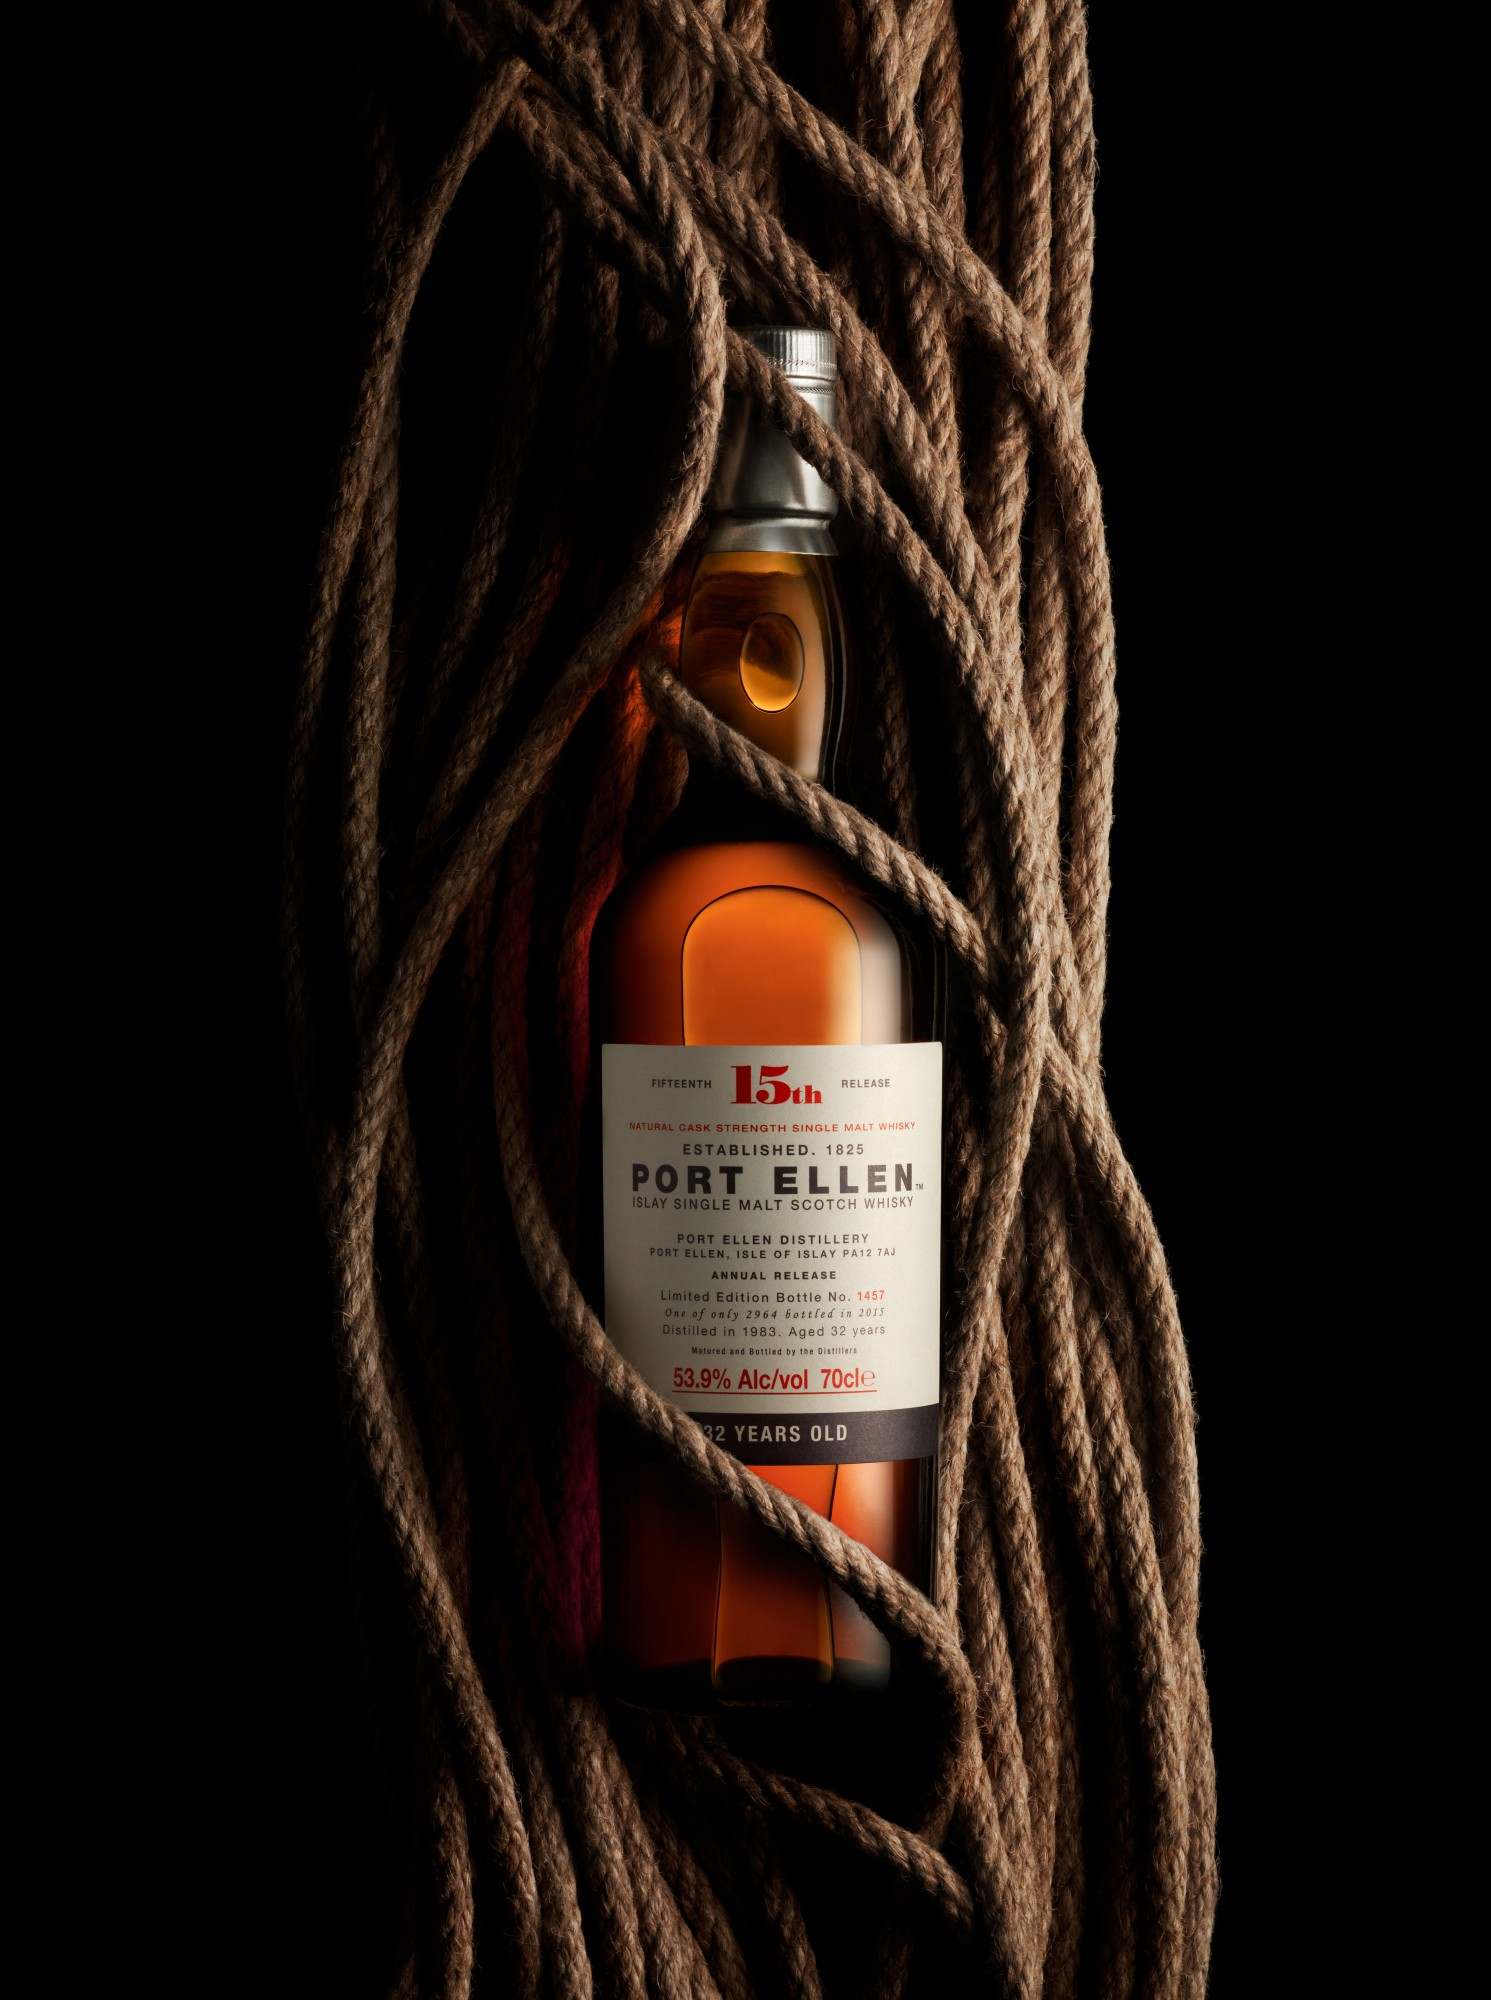 Port Ellen 2-Whisky Magazine